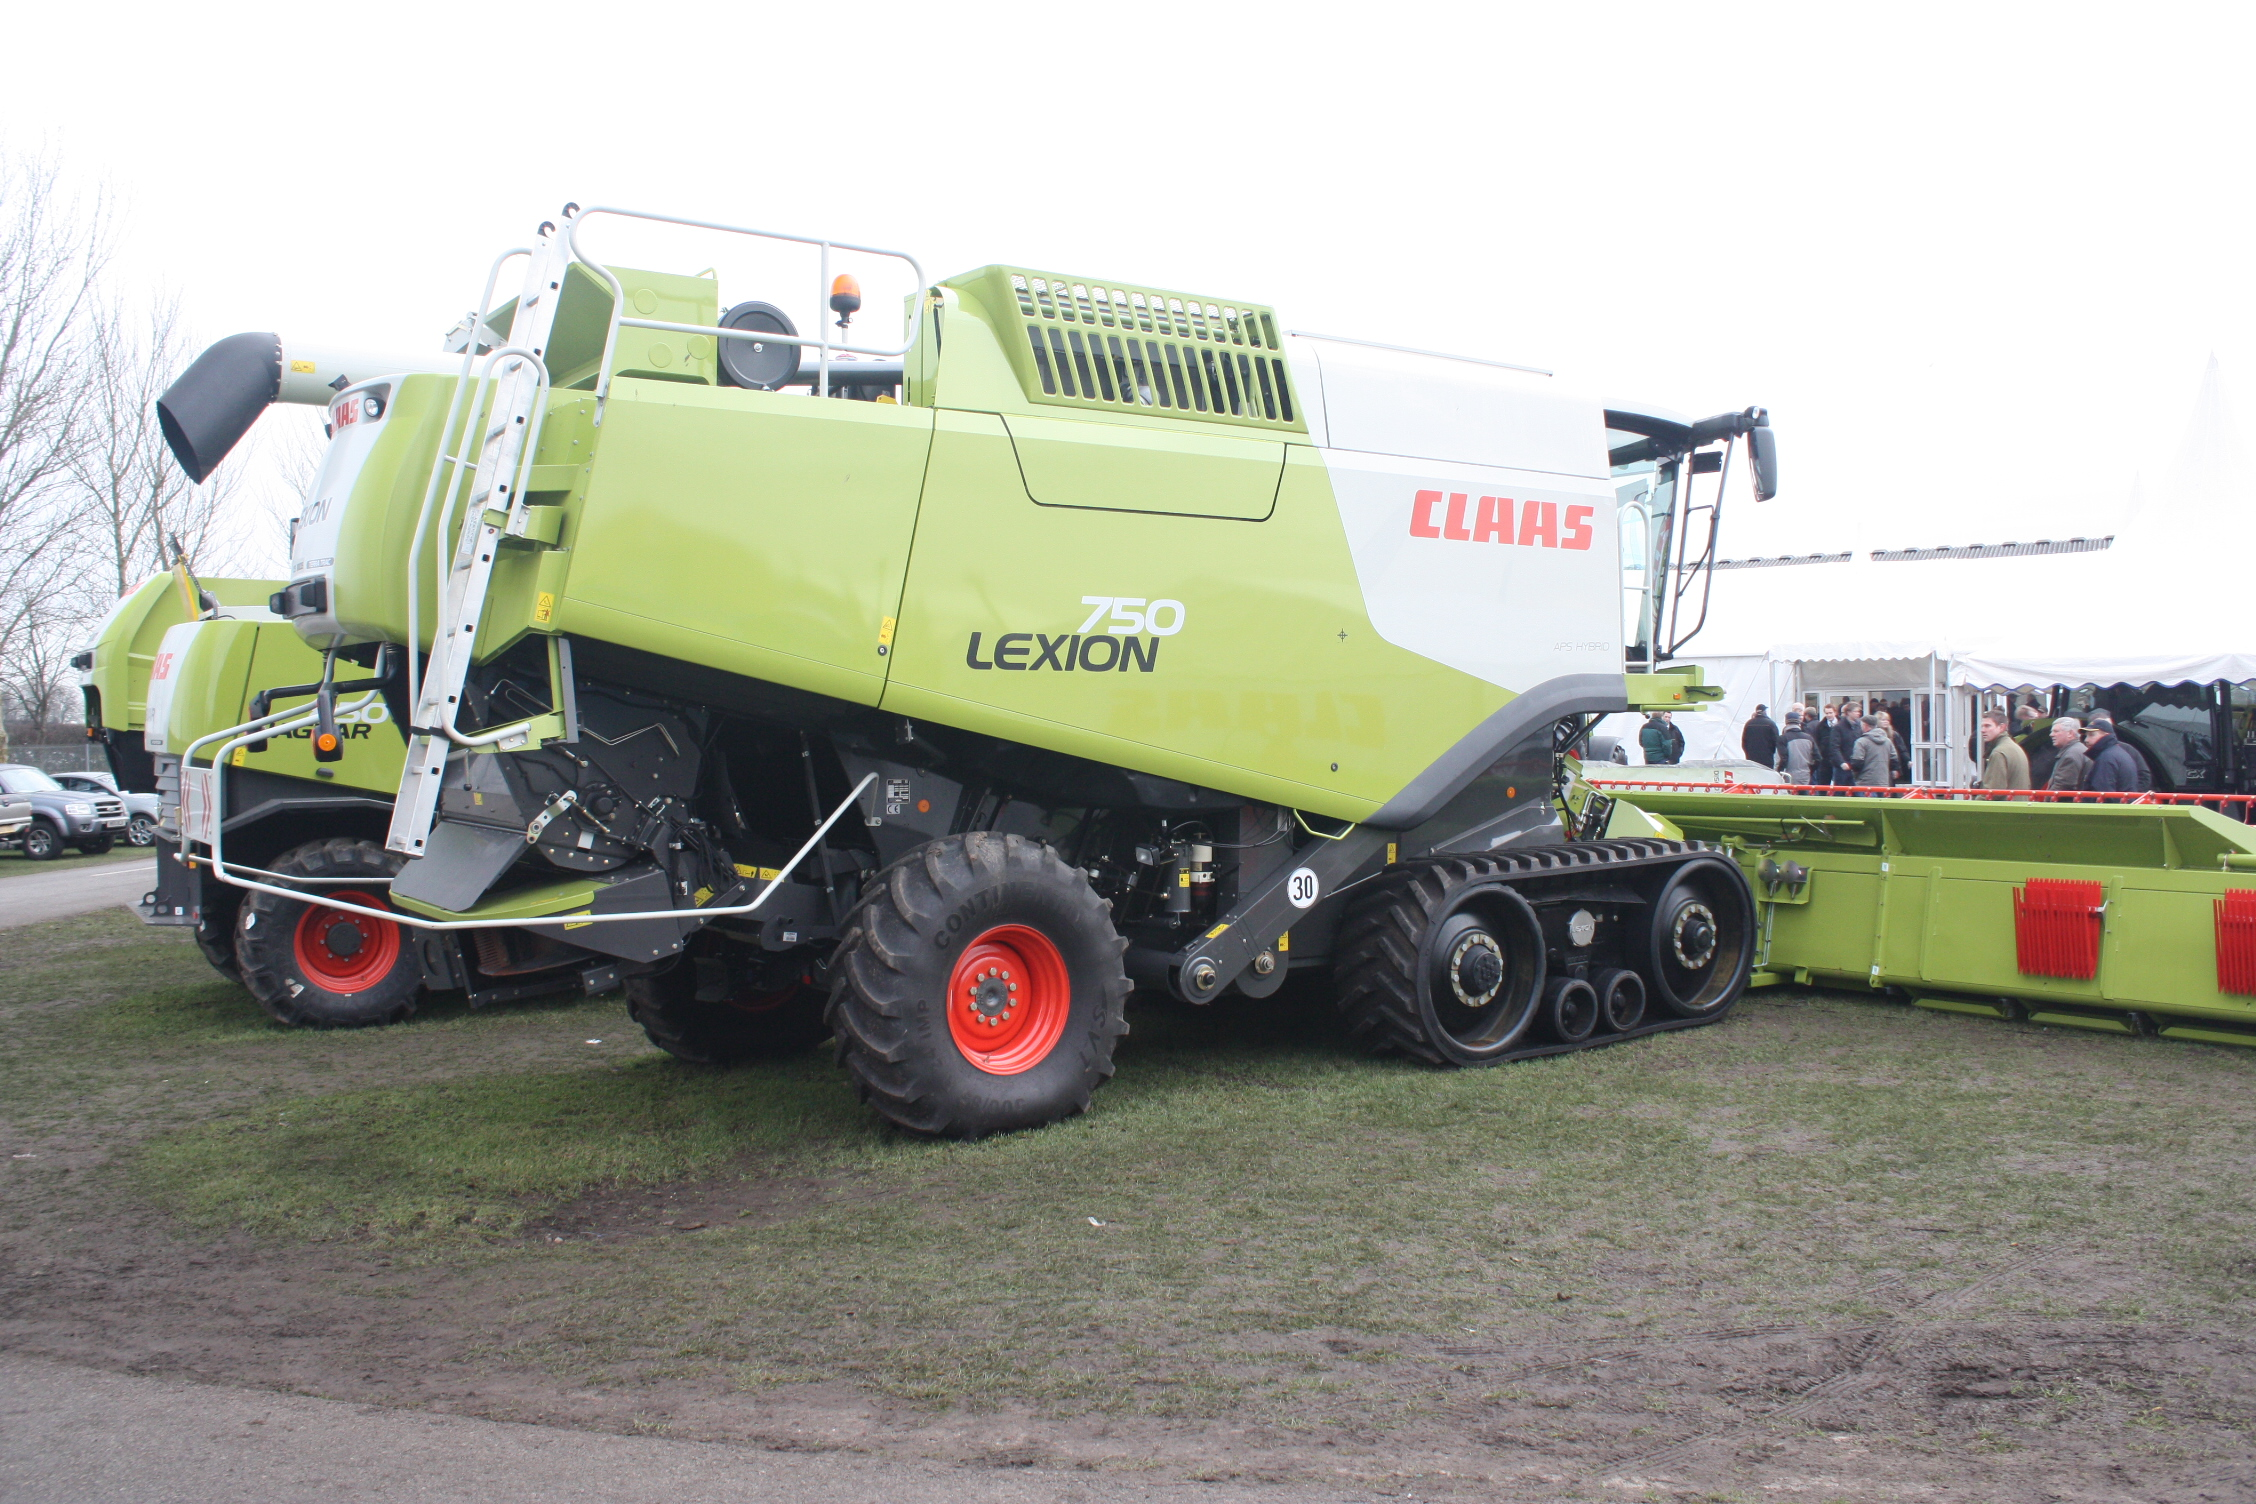 File:Claas Lexion 750 combine (side) at LAMMA 2011 - 6062 ...